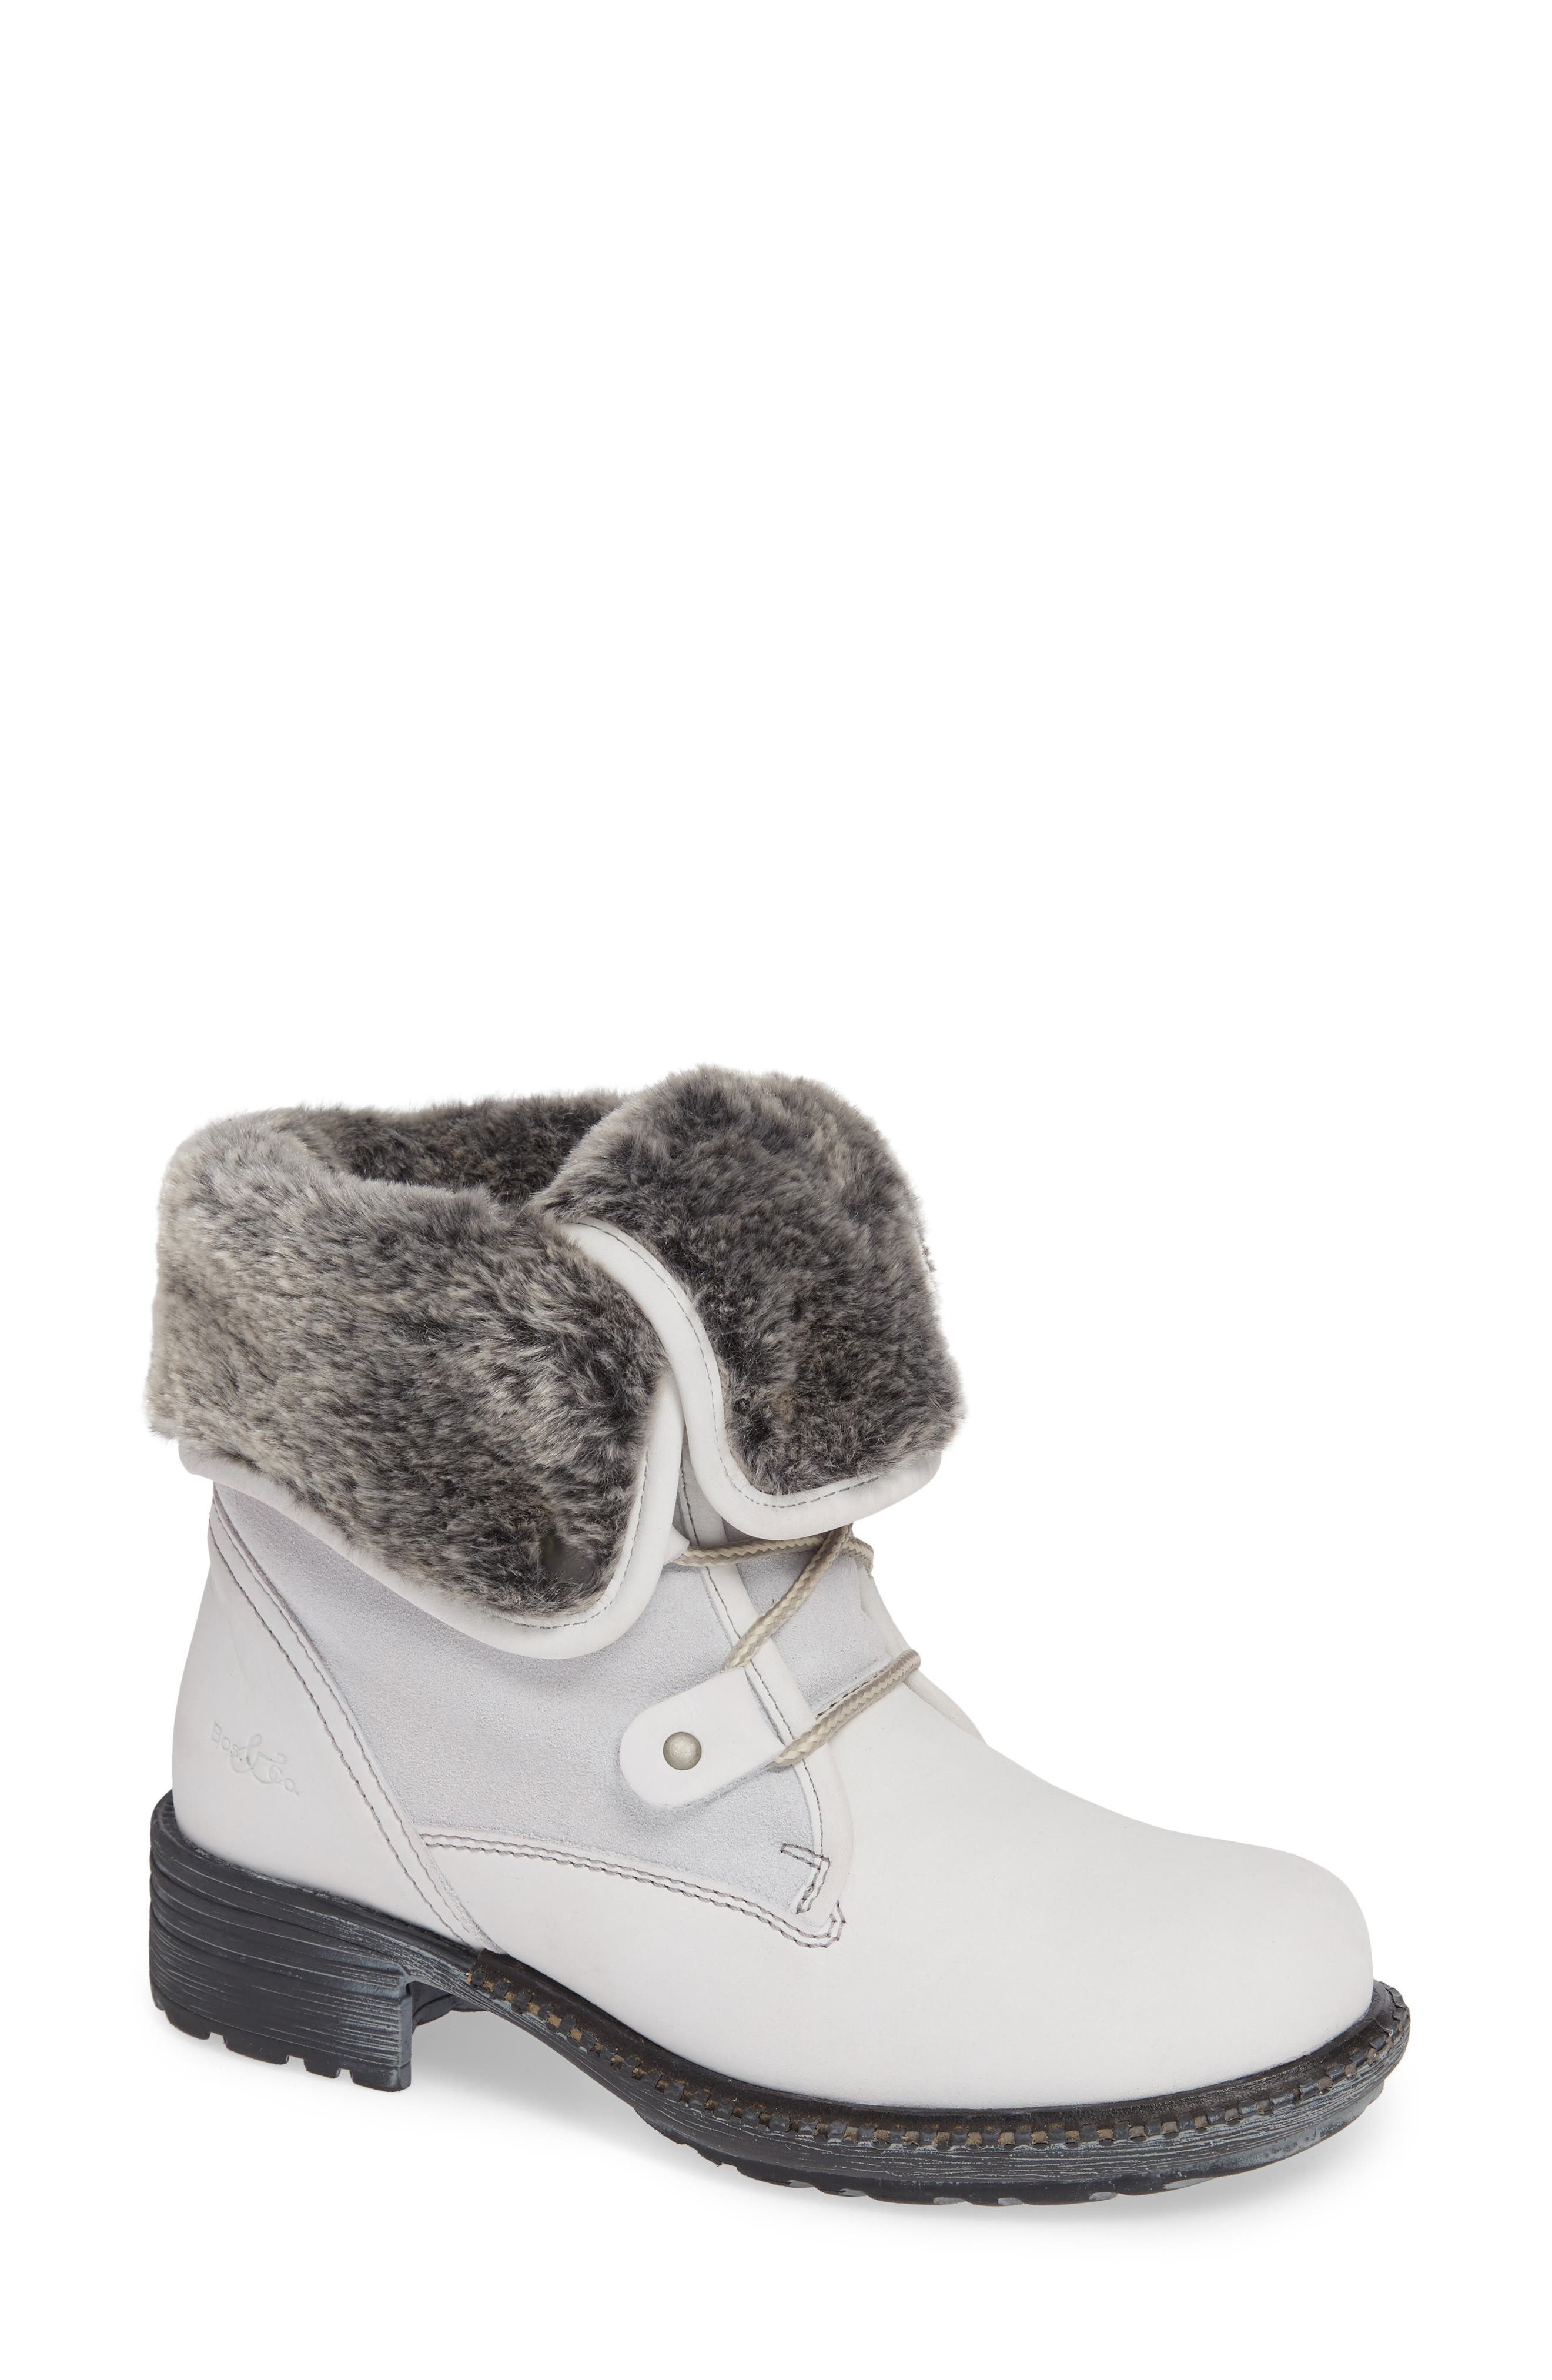 Bos. & Co. Springfield Waterproof Winter Boot, White